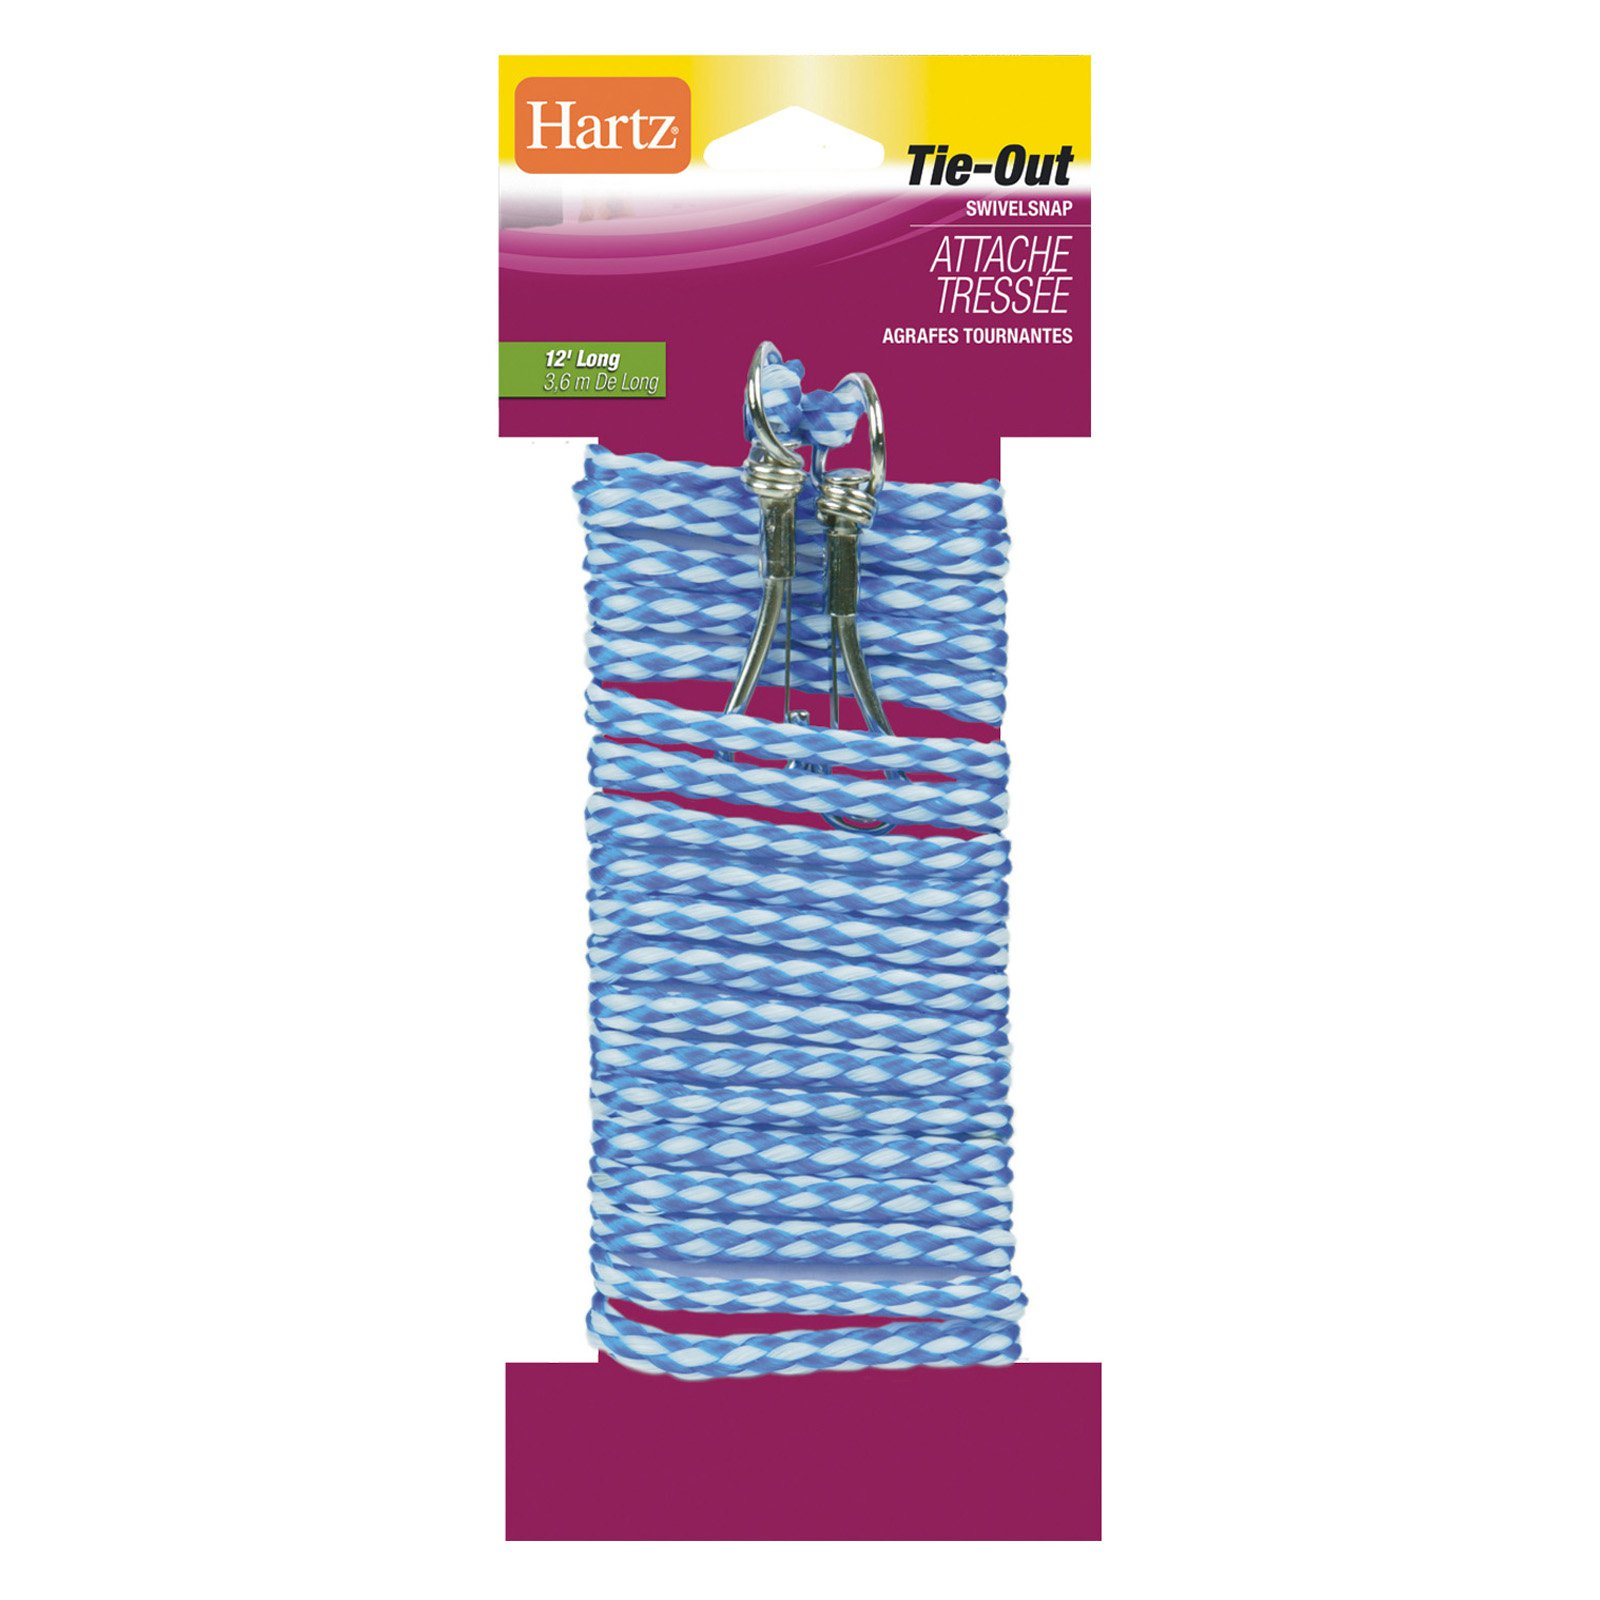 Hartz 84421 12' Living Braided Tie-Out